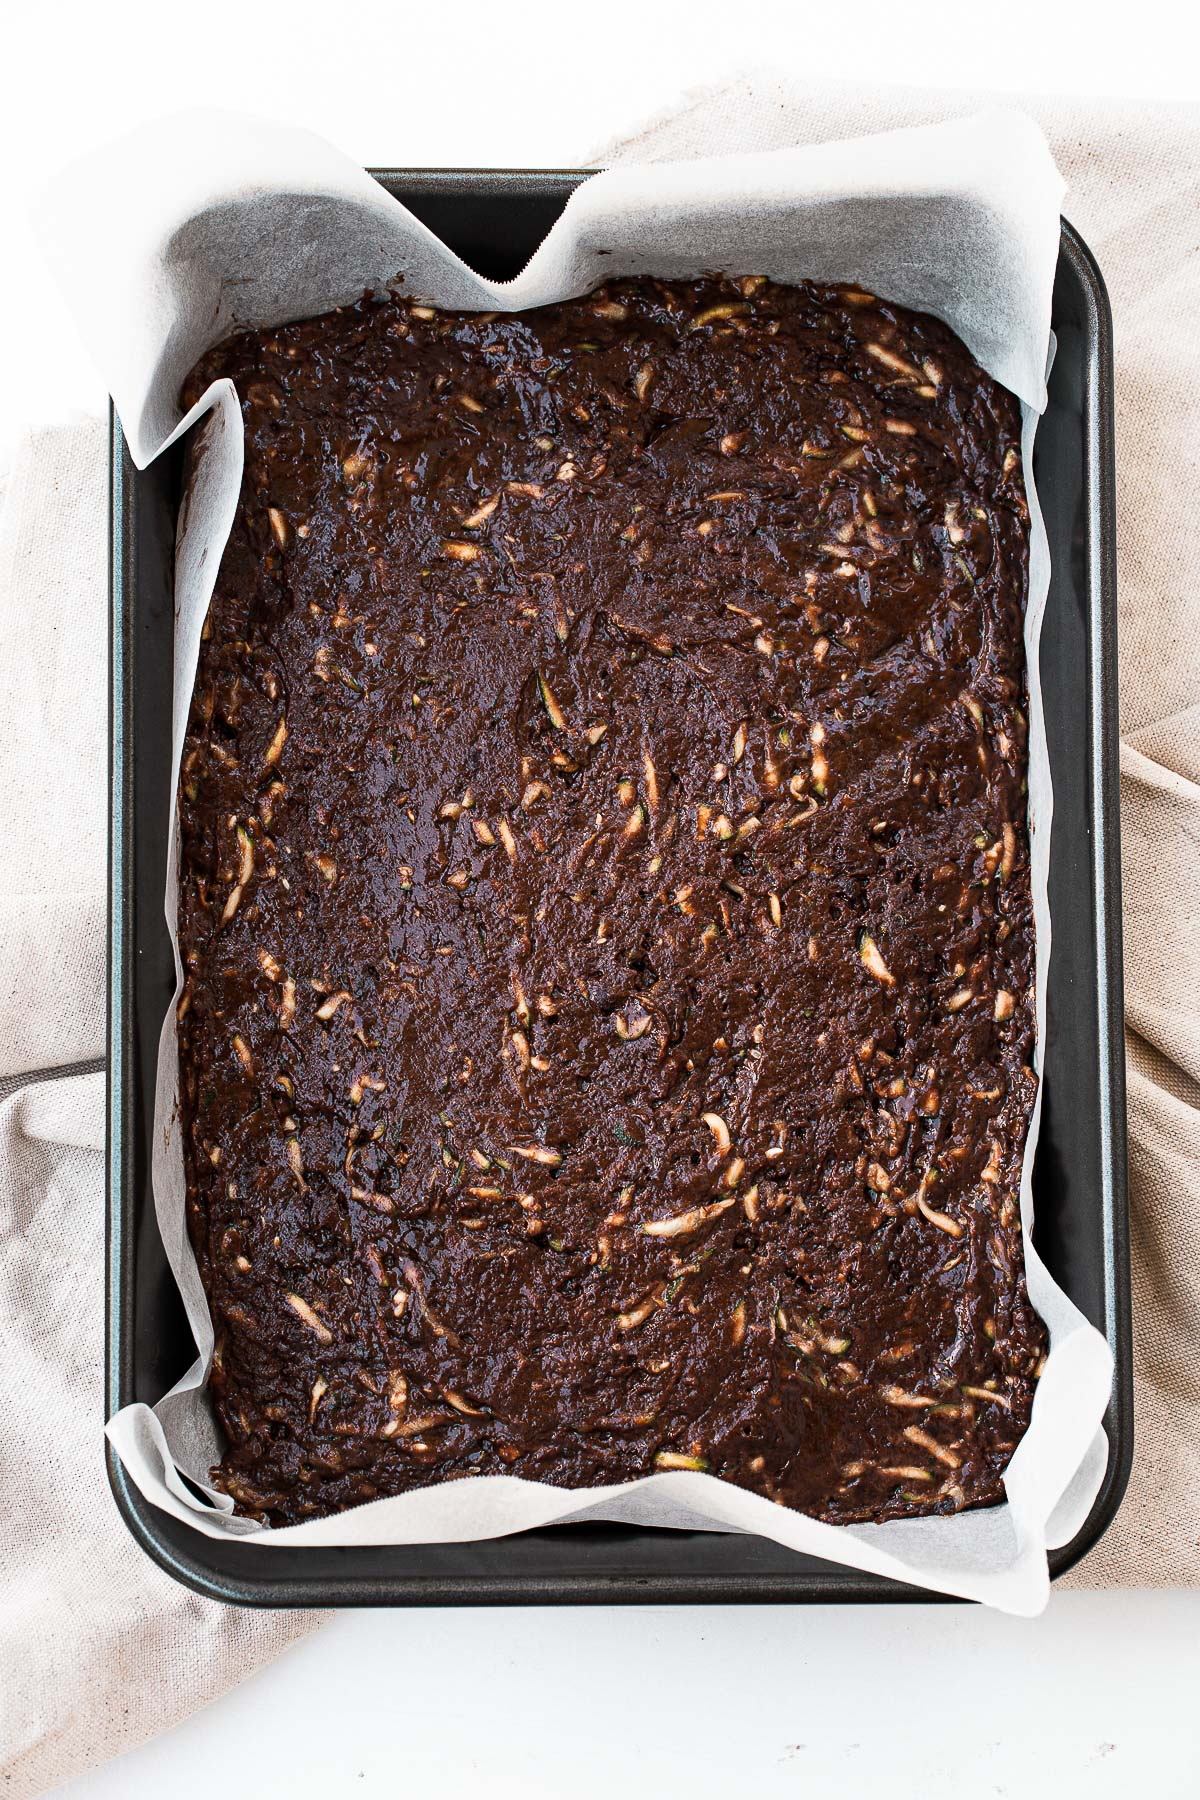 Brownie batter with zucchini in a baking dish.